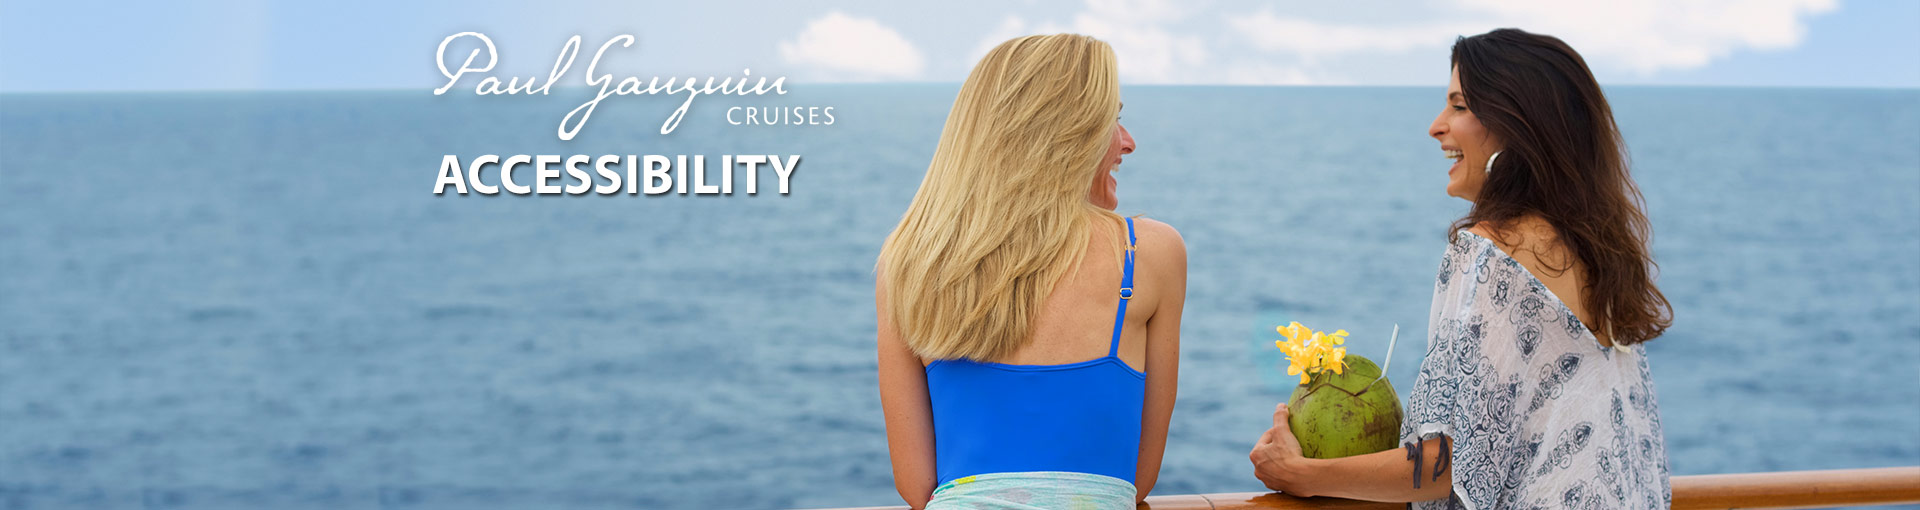 Paul Gauguin Cruises Accessibility